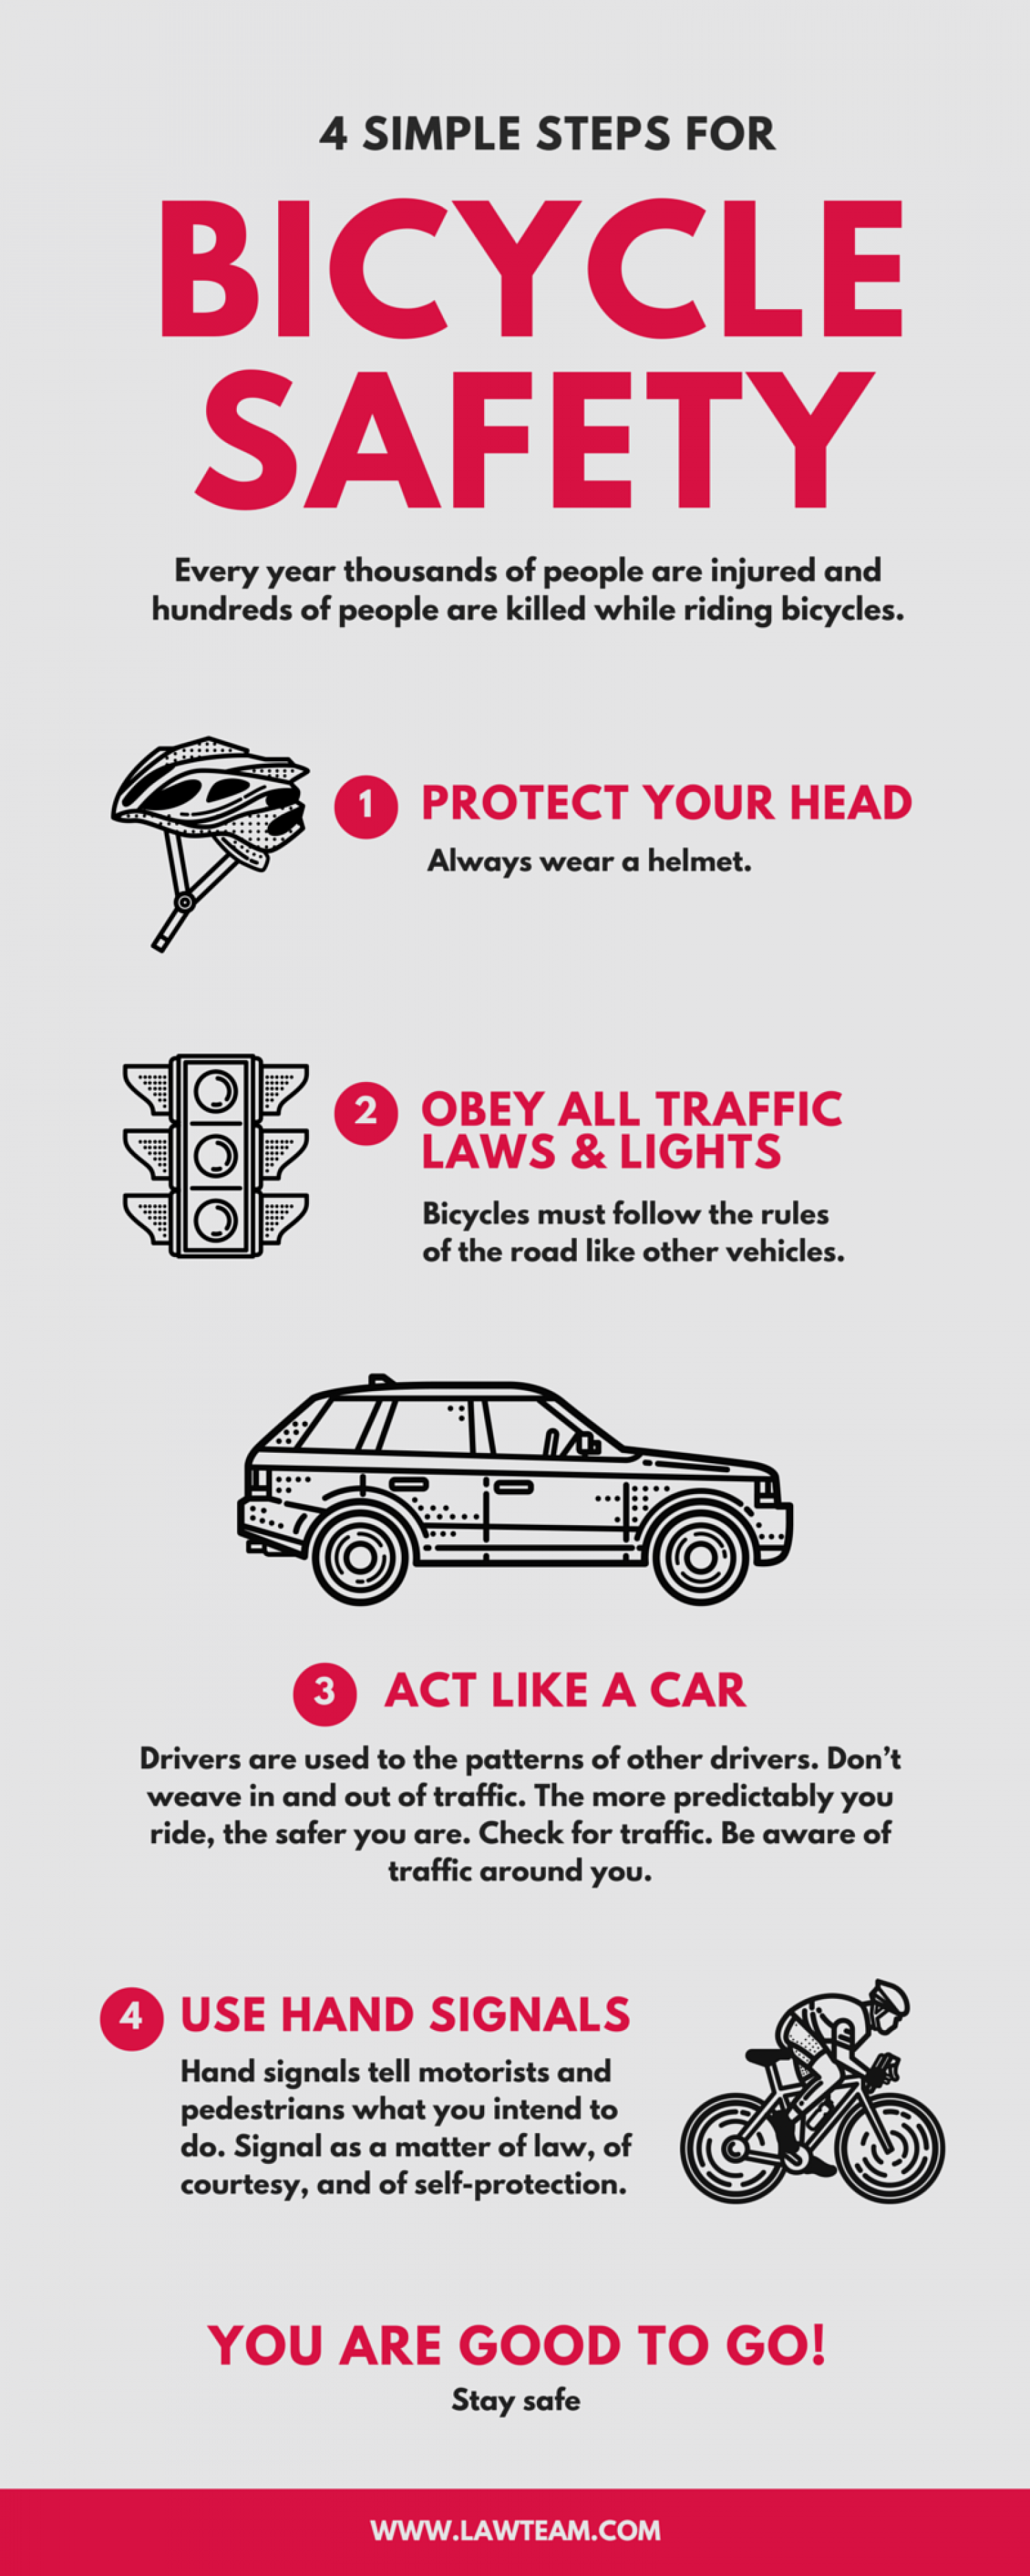 4 Simple Steps for Bicycle Safety Infographic